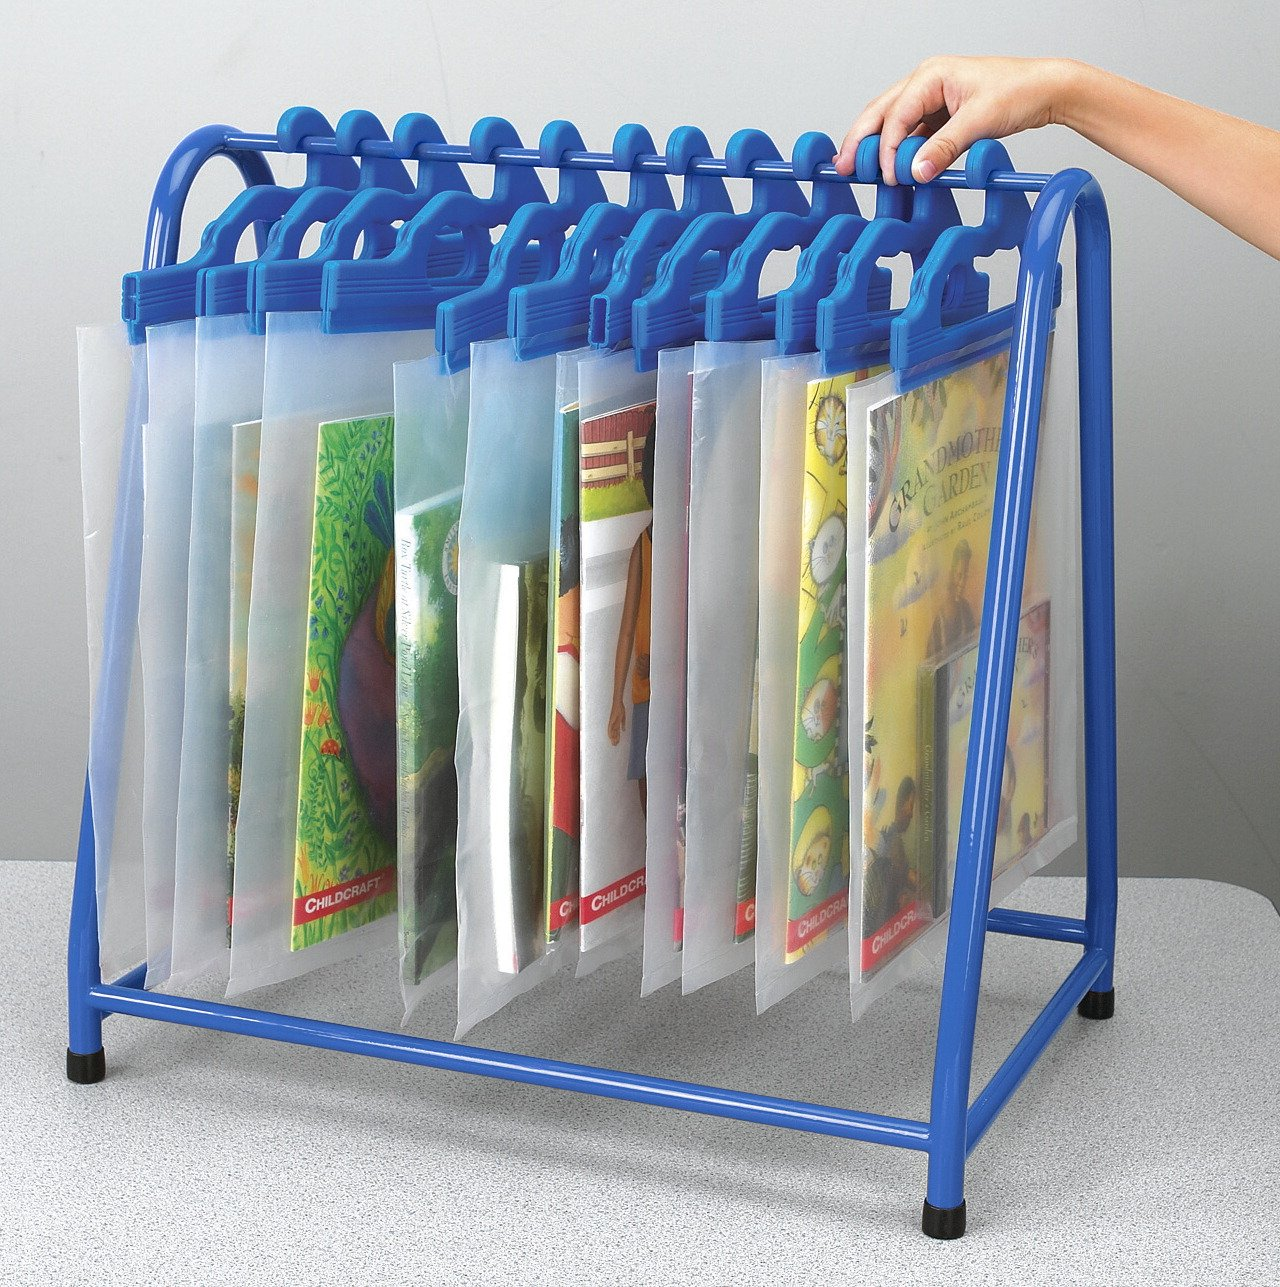 School Specialty TA-7219KD-BL Metal Read Along Book Rack, Blue by School Specialty (Image #1)